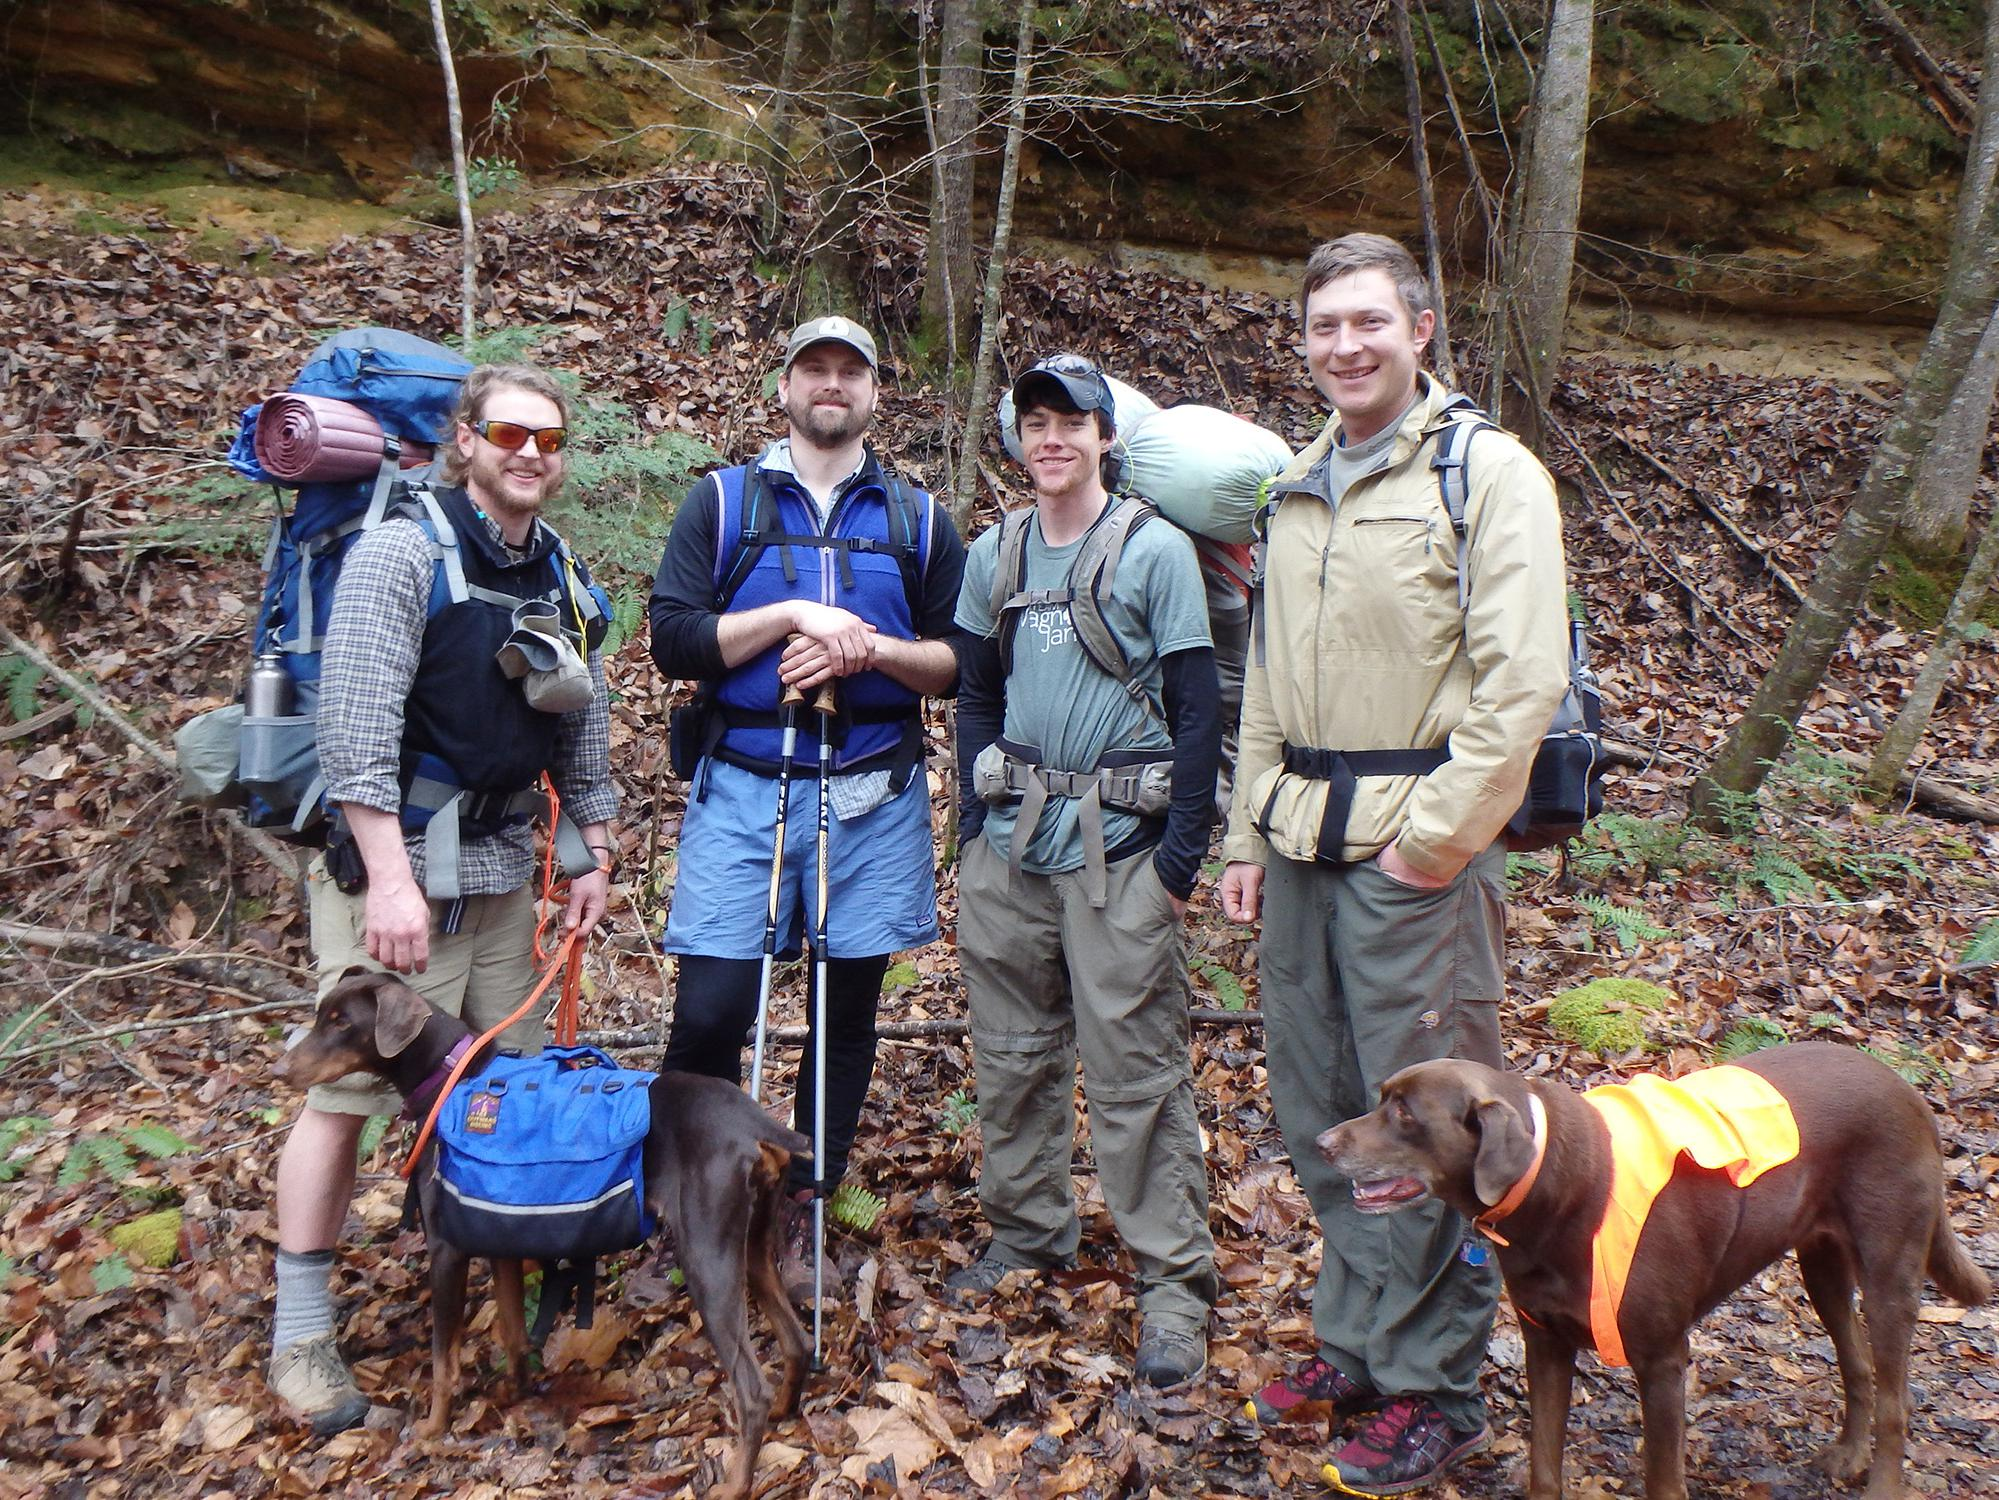 Don't let the colder weather prevent outdoor adventures this winter. This group is staying comfortable by layering their clothing. (Photo by MSU Extension Service/Evan O'Donnell)